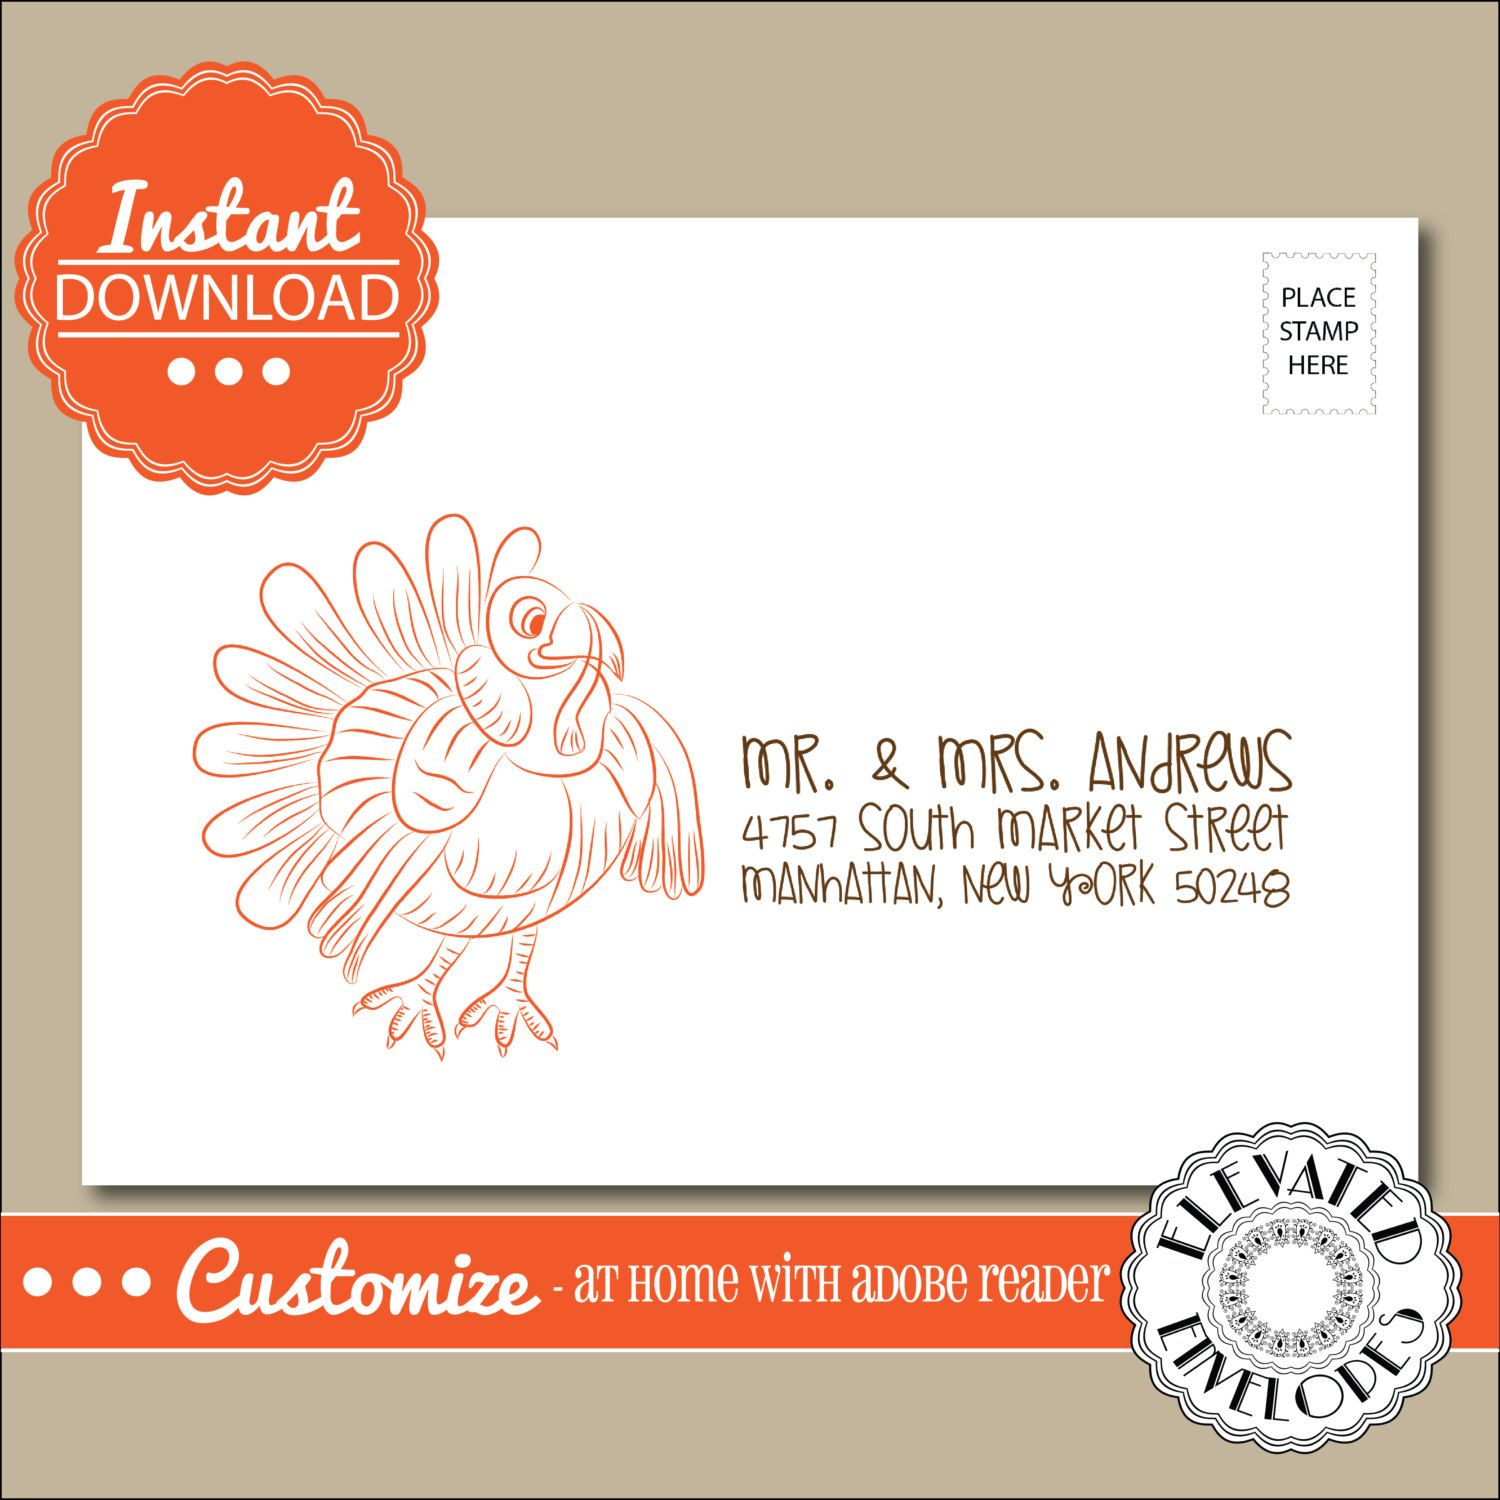 Editable christmas card address label templateenvelope addressing editable thanksgiving envelope templatethanksgiving envelope addressingturkeyrecipient addressingenvelope addressing pronofoot35fo Gallery